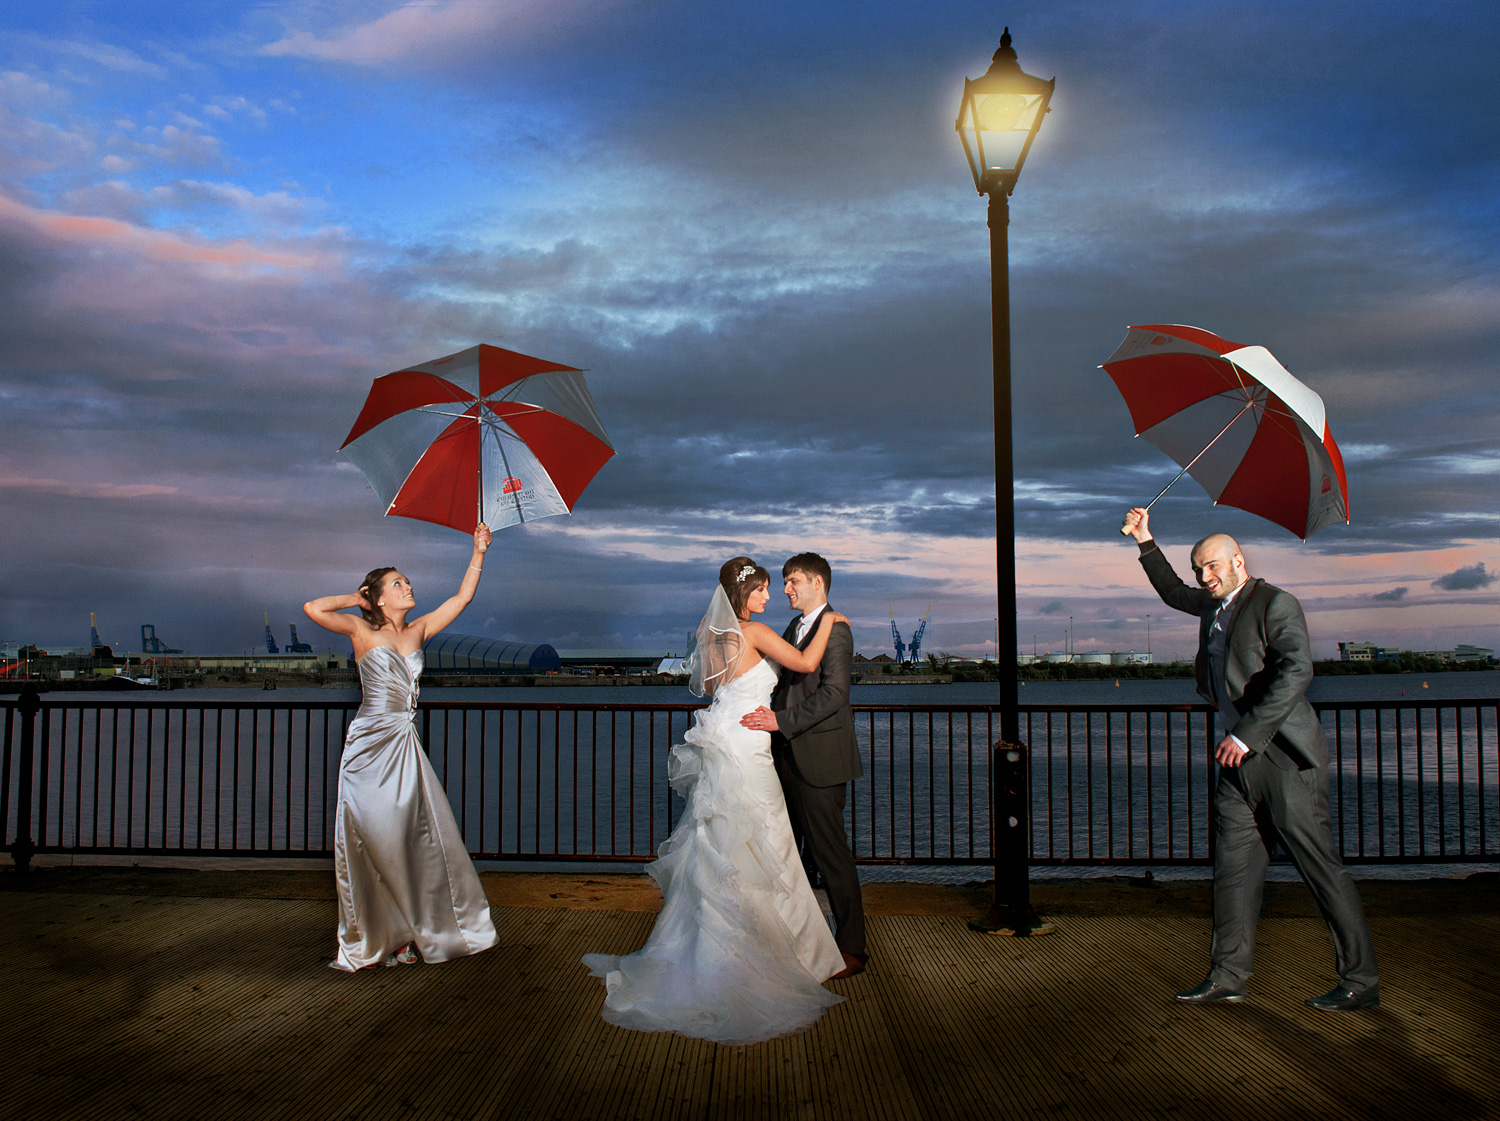 Second place for Wedding Art & Fashion Photography